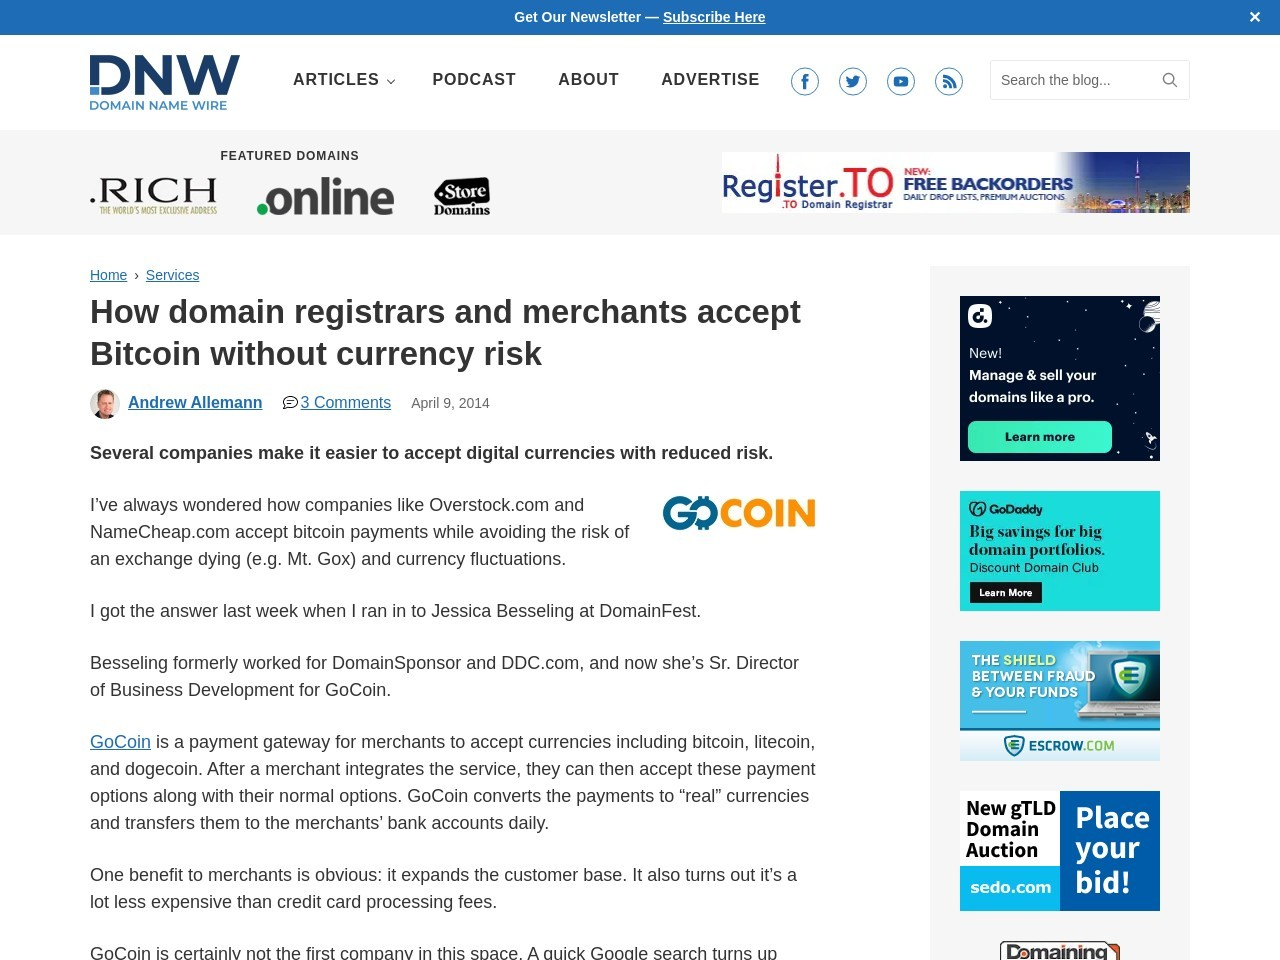 How domain registrars and merchants accept Bitcoin without currency risk